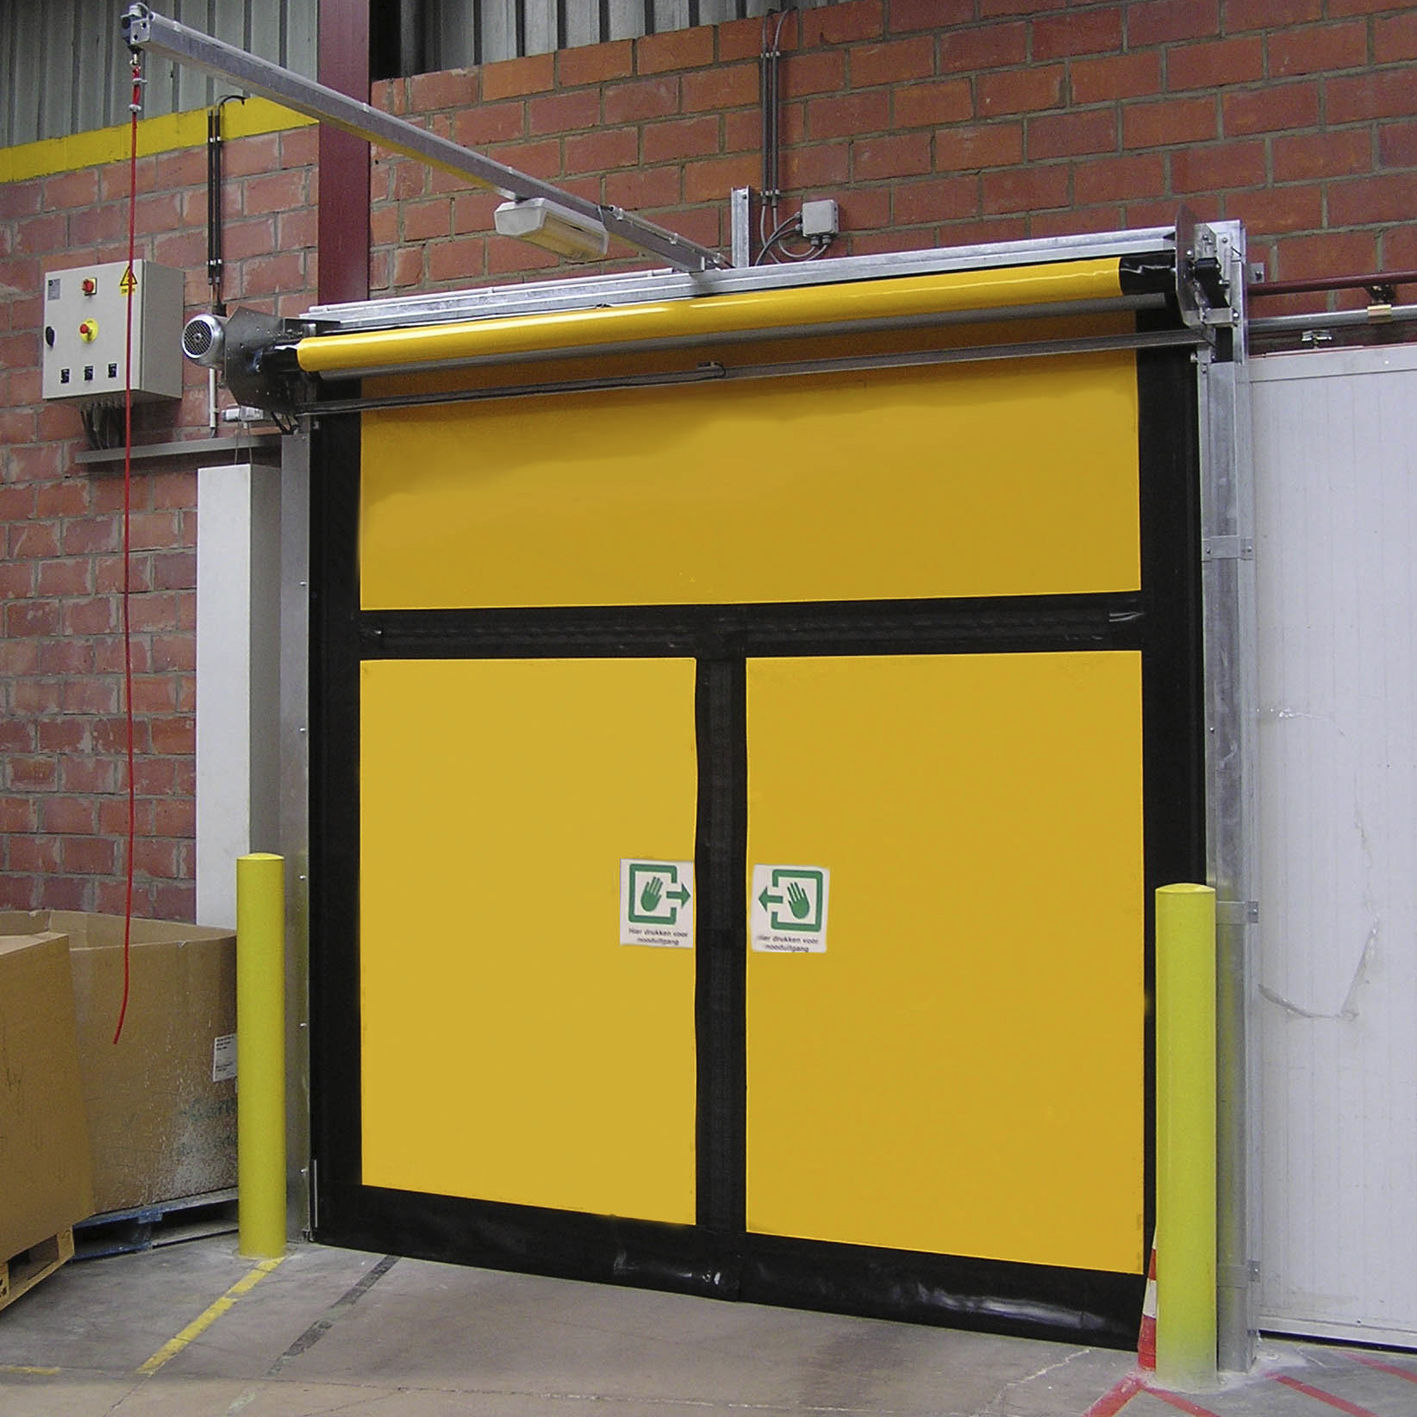 hiSpeed2 & High Speed Doors - Ru0026S Installation and Repair Services pezcame.com